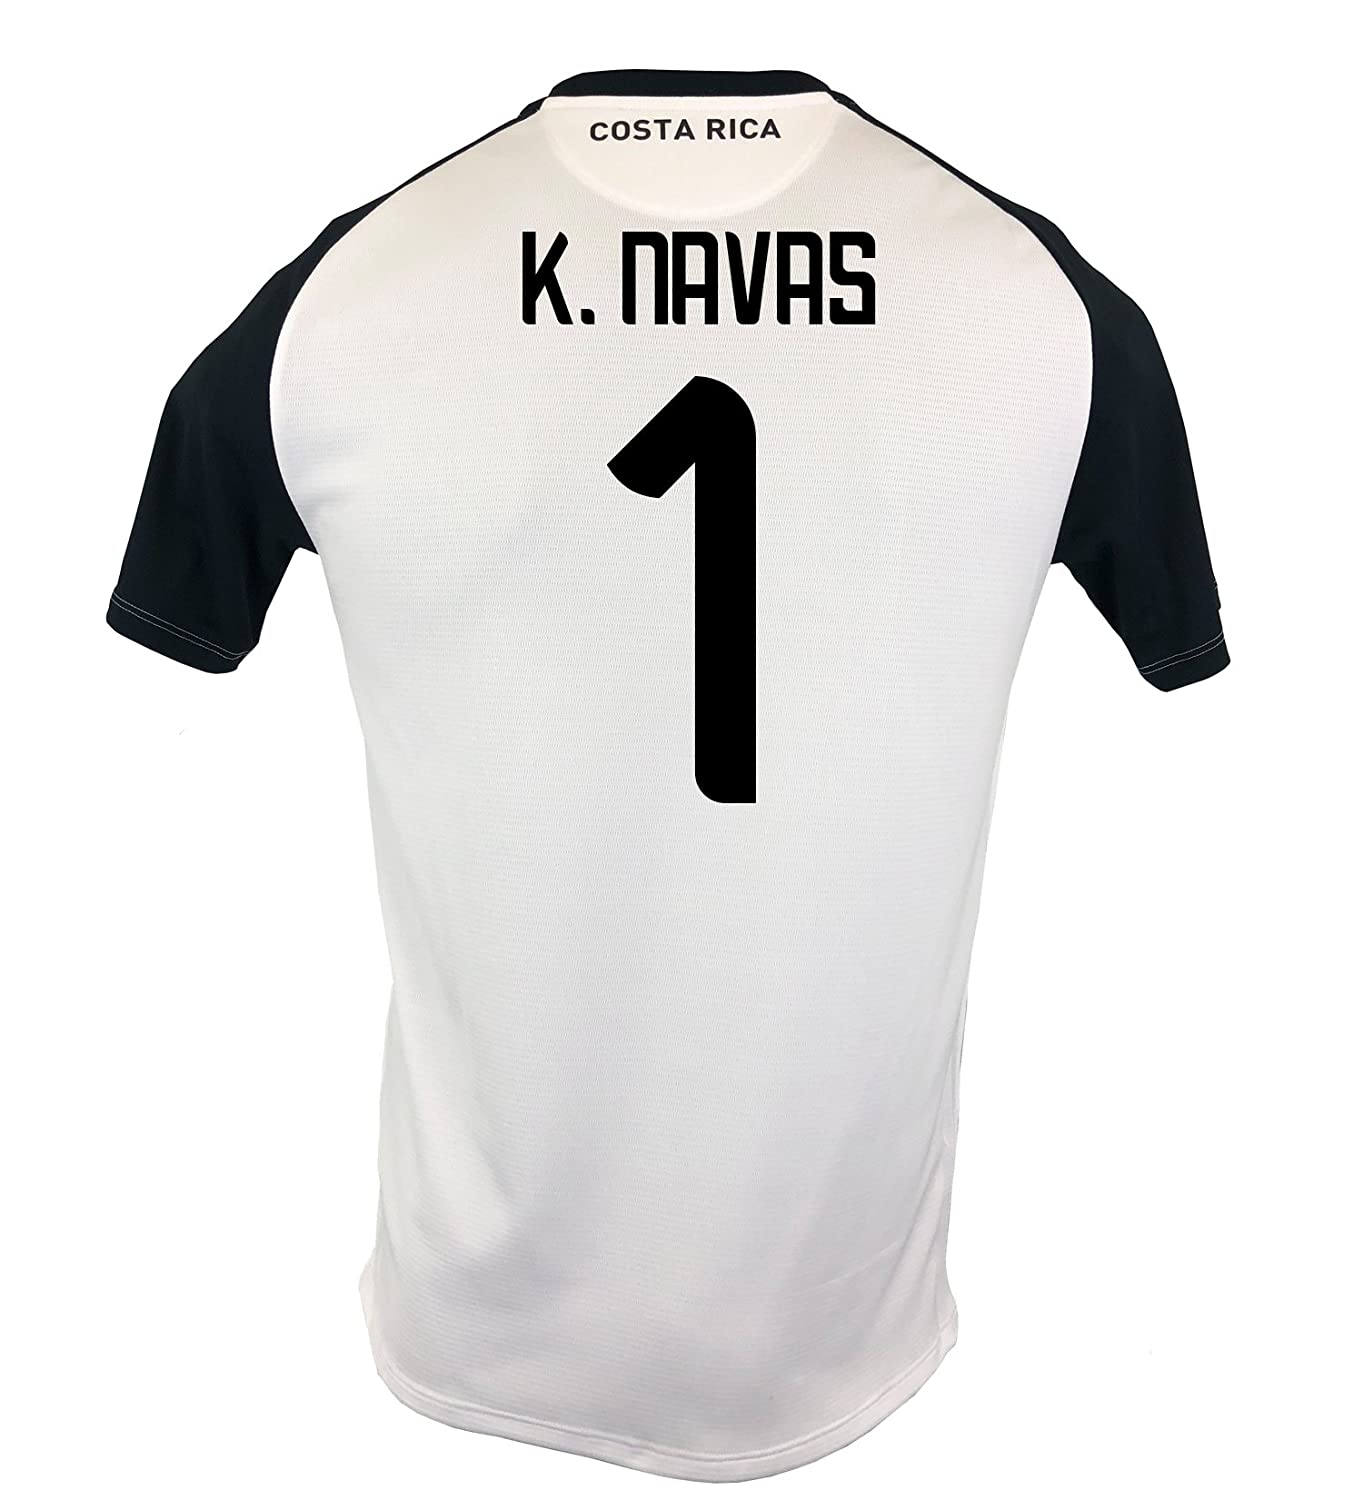 6848fb03f67 Amazon.com  New Balance K. Navas  1 Costa Rica Away Soccer Men s Jersey  FIFA World Cup Russia 2018 White